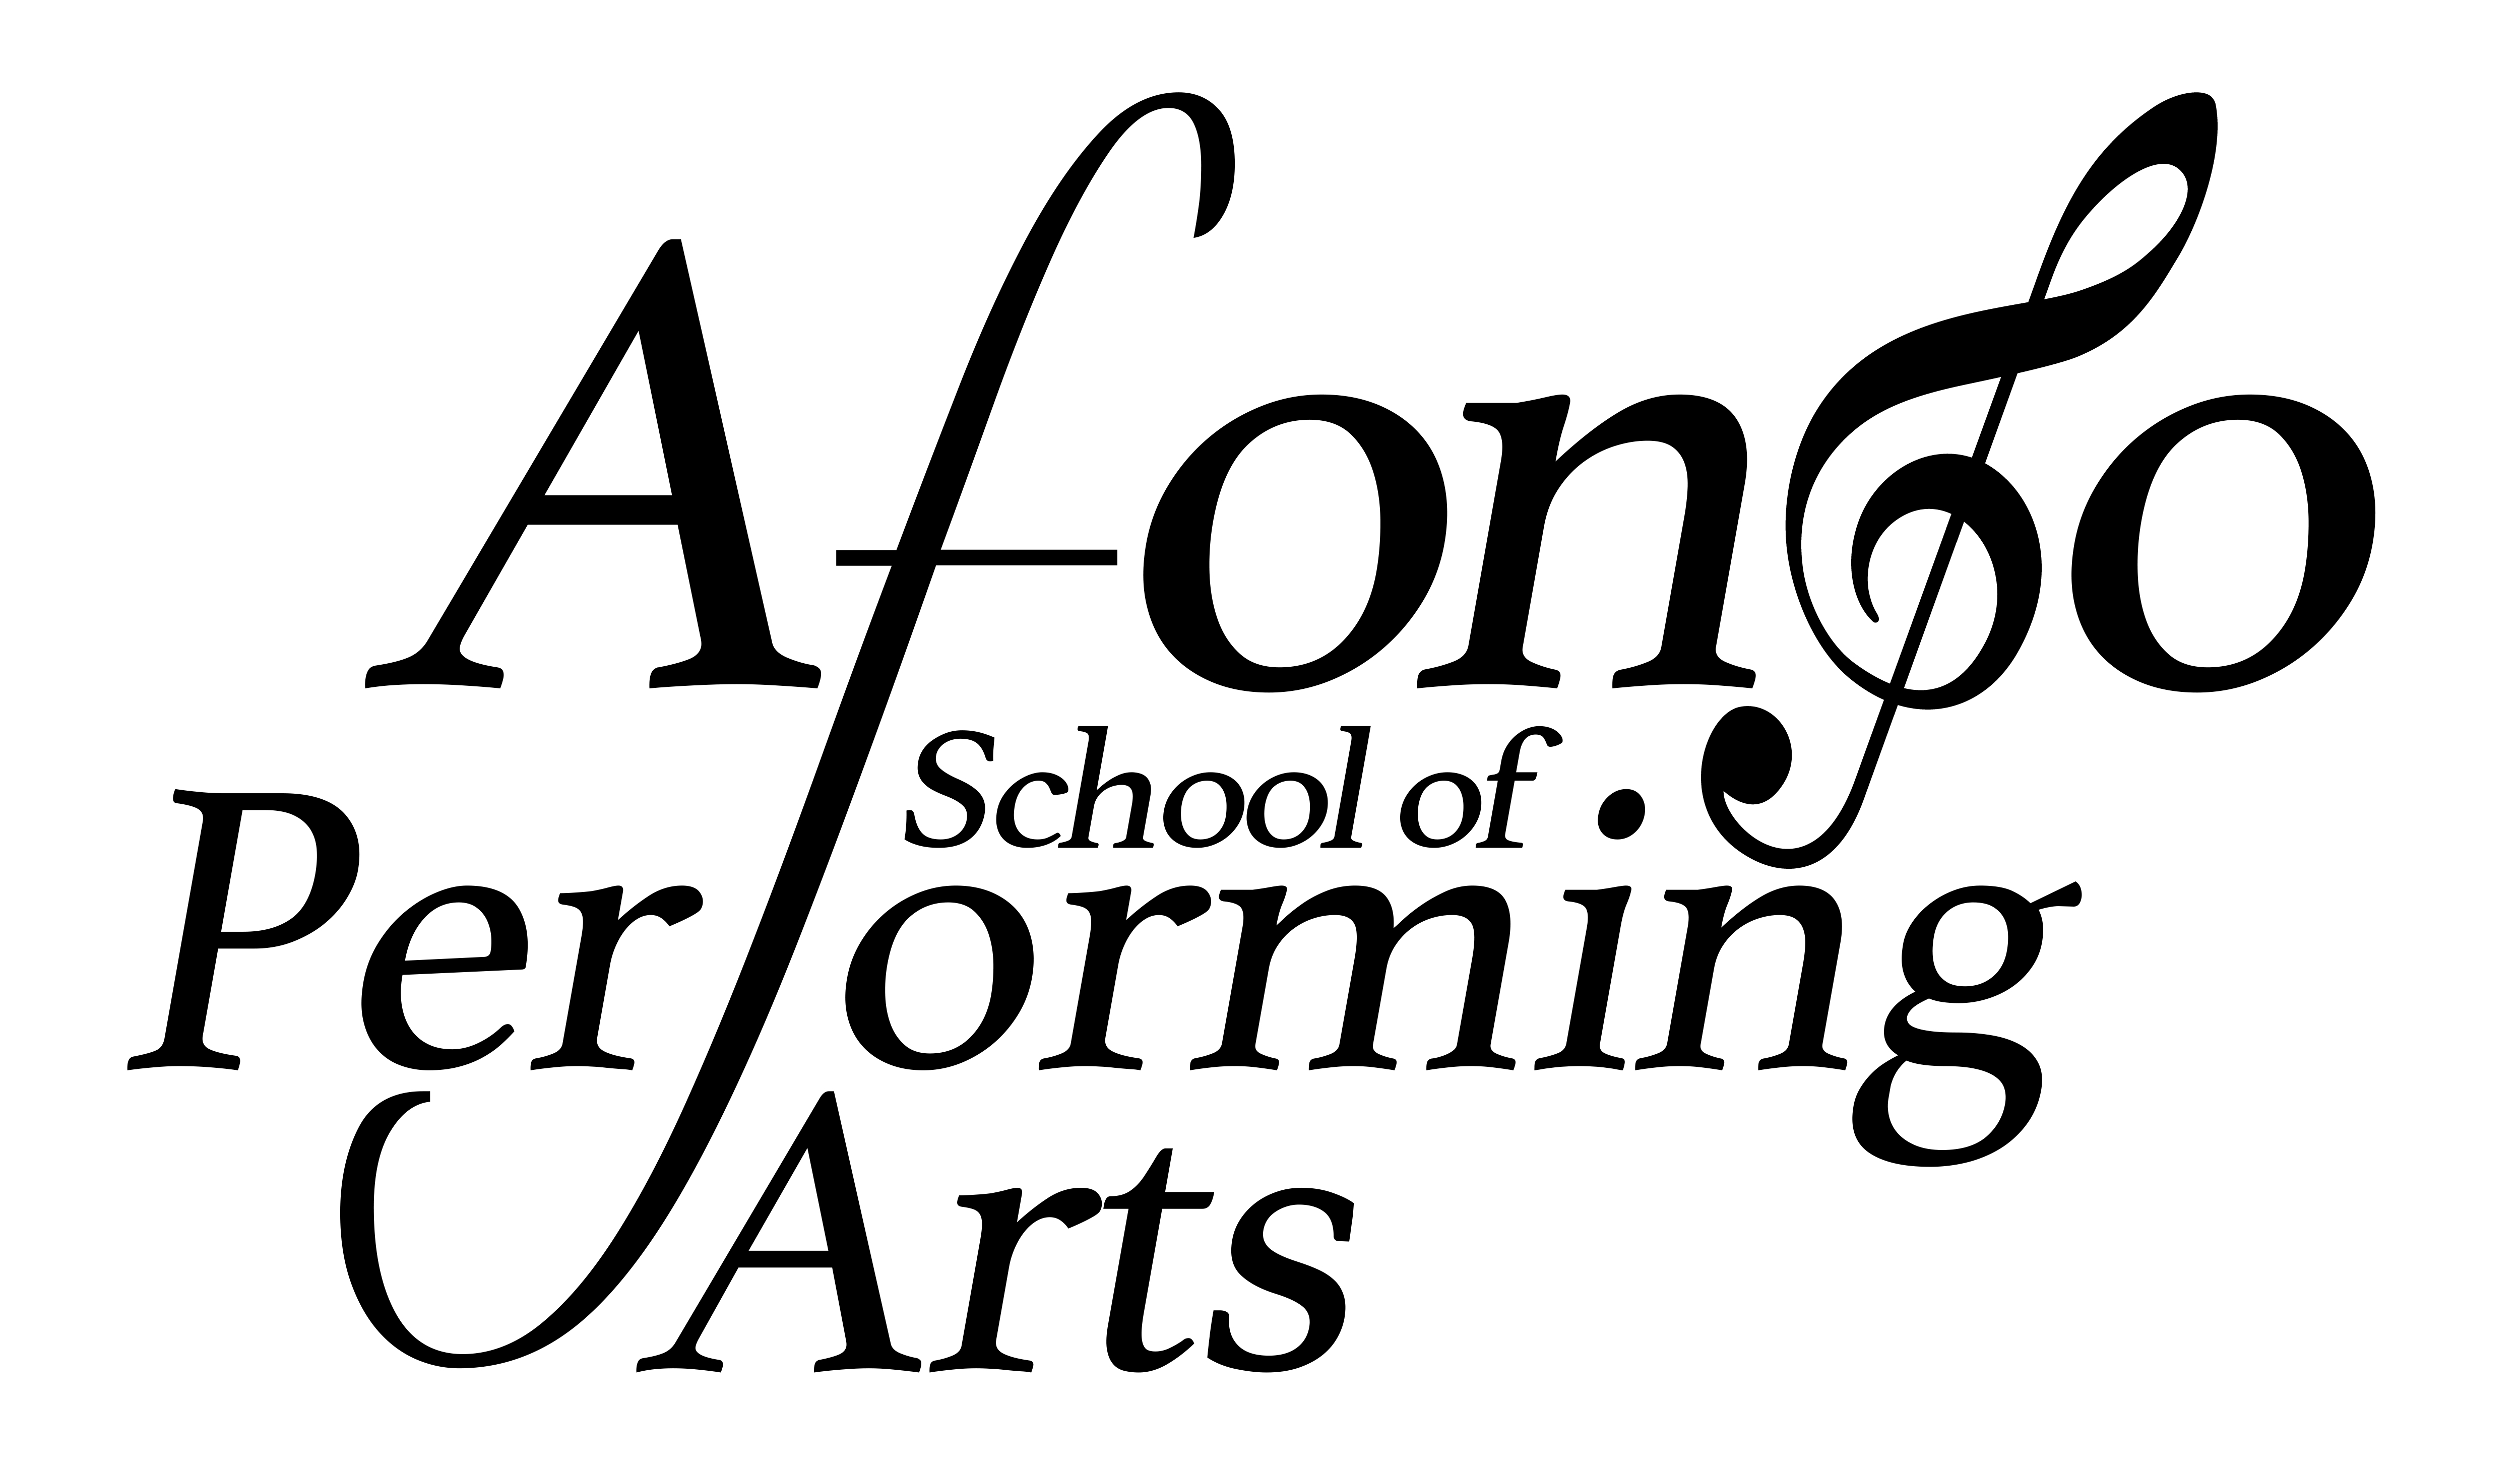 Afonso School Of Performing Arts